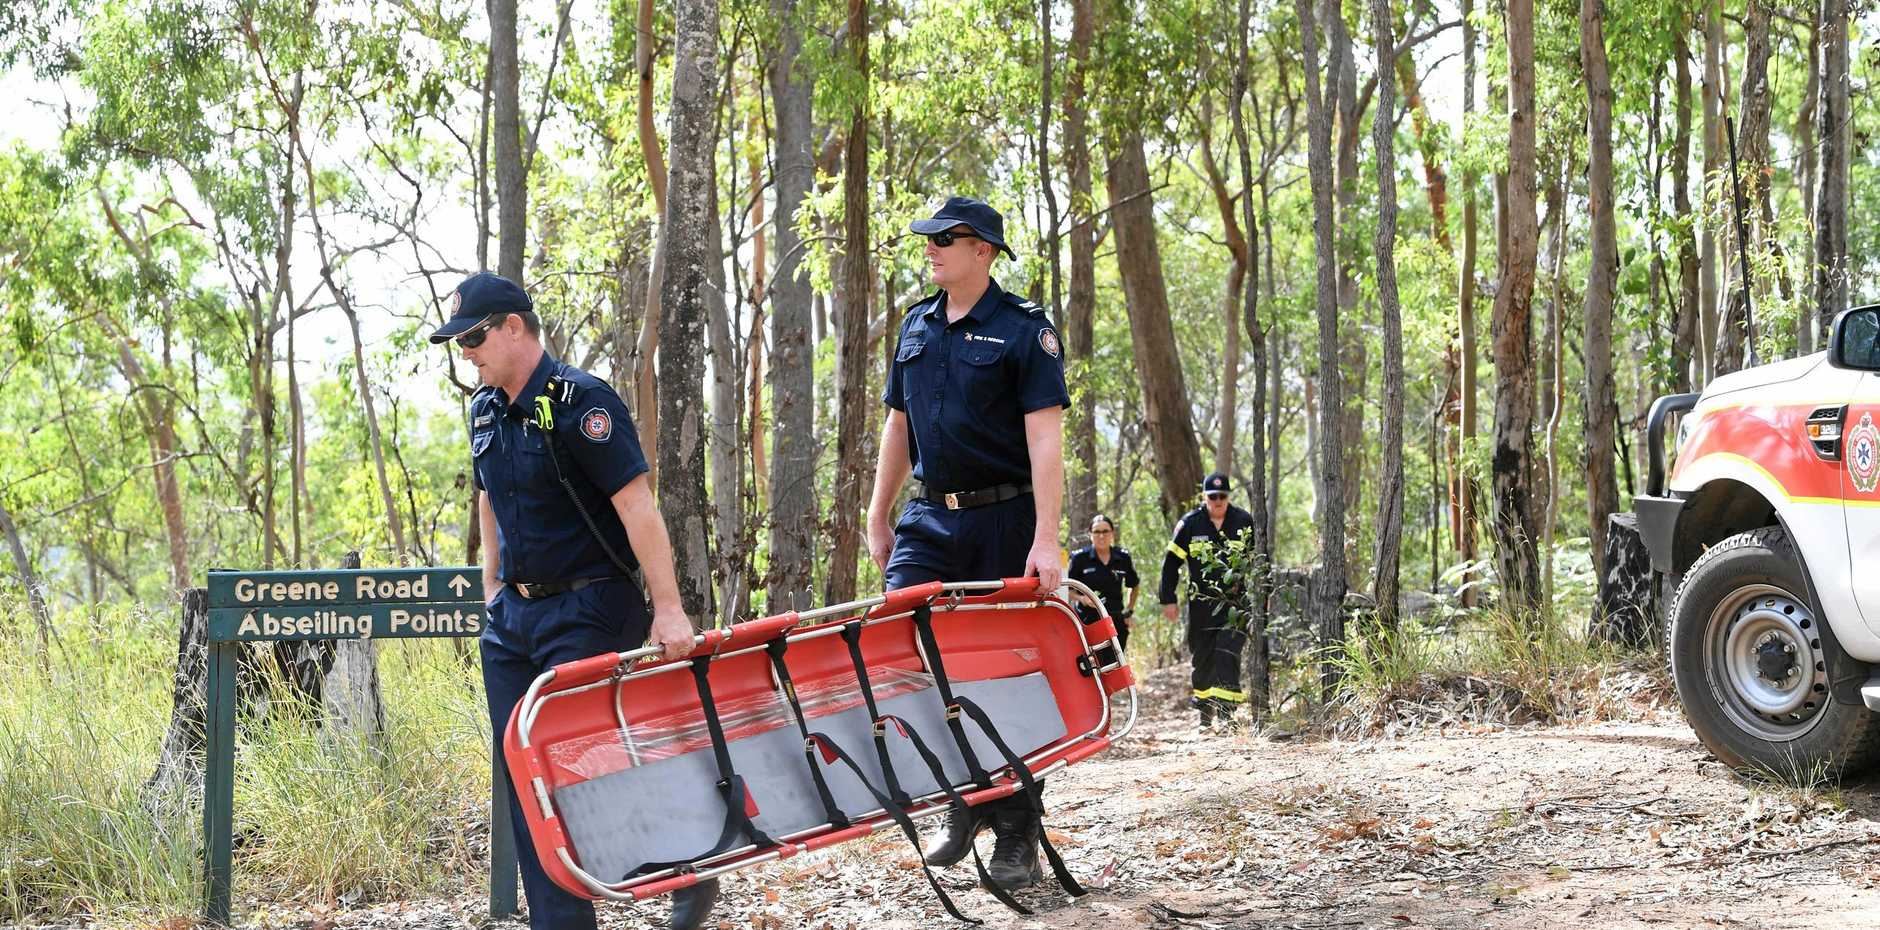 CLIFF TRAGEDY: Emergency crews were unable to save a critically injured man who died after an abseiling accident near Gympie on Saturday.